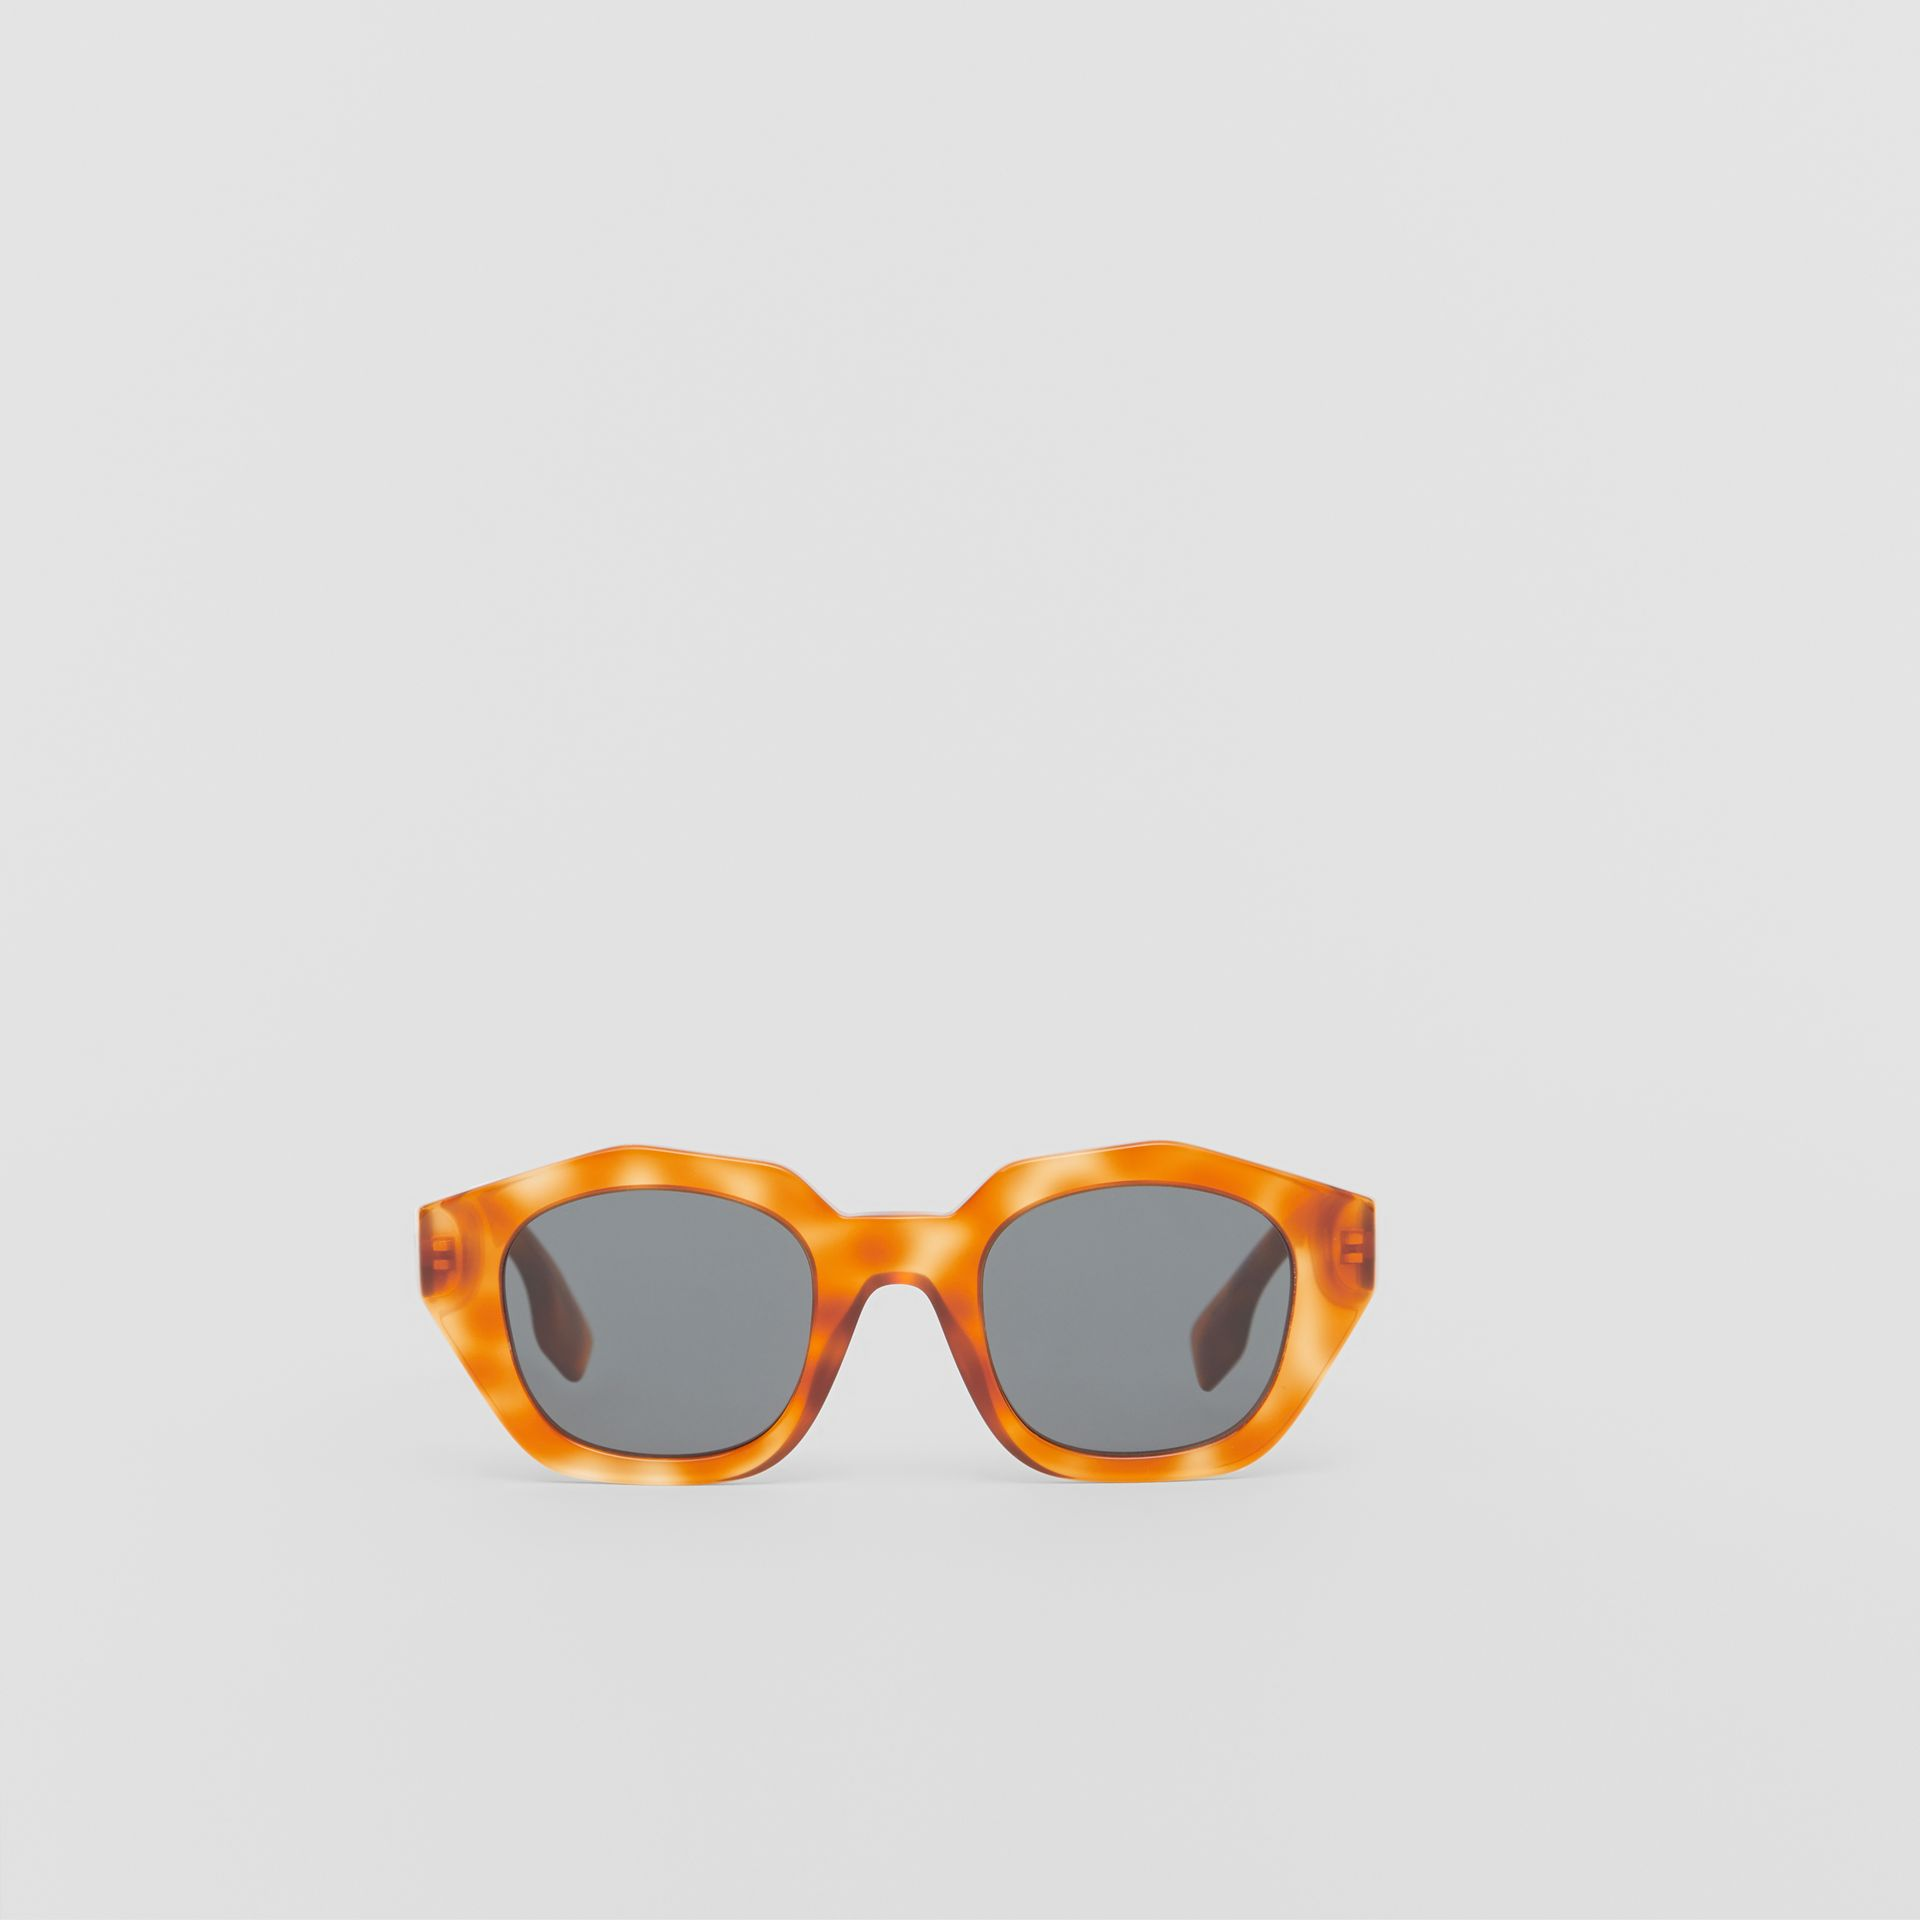 Geometric Frame Sunglasses in Tortoiseshell Amber - Women | Burberry - gallery image 0